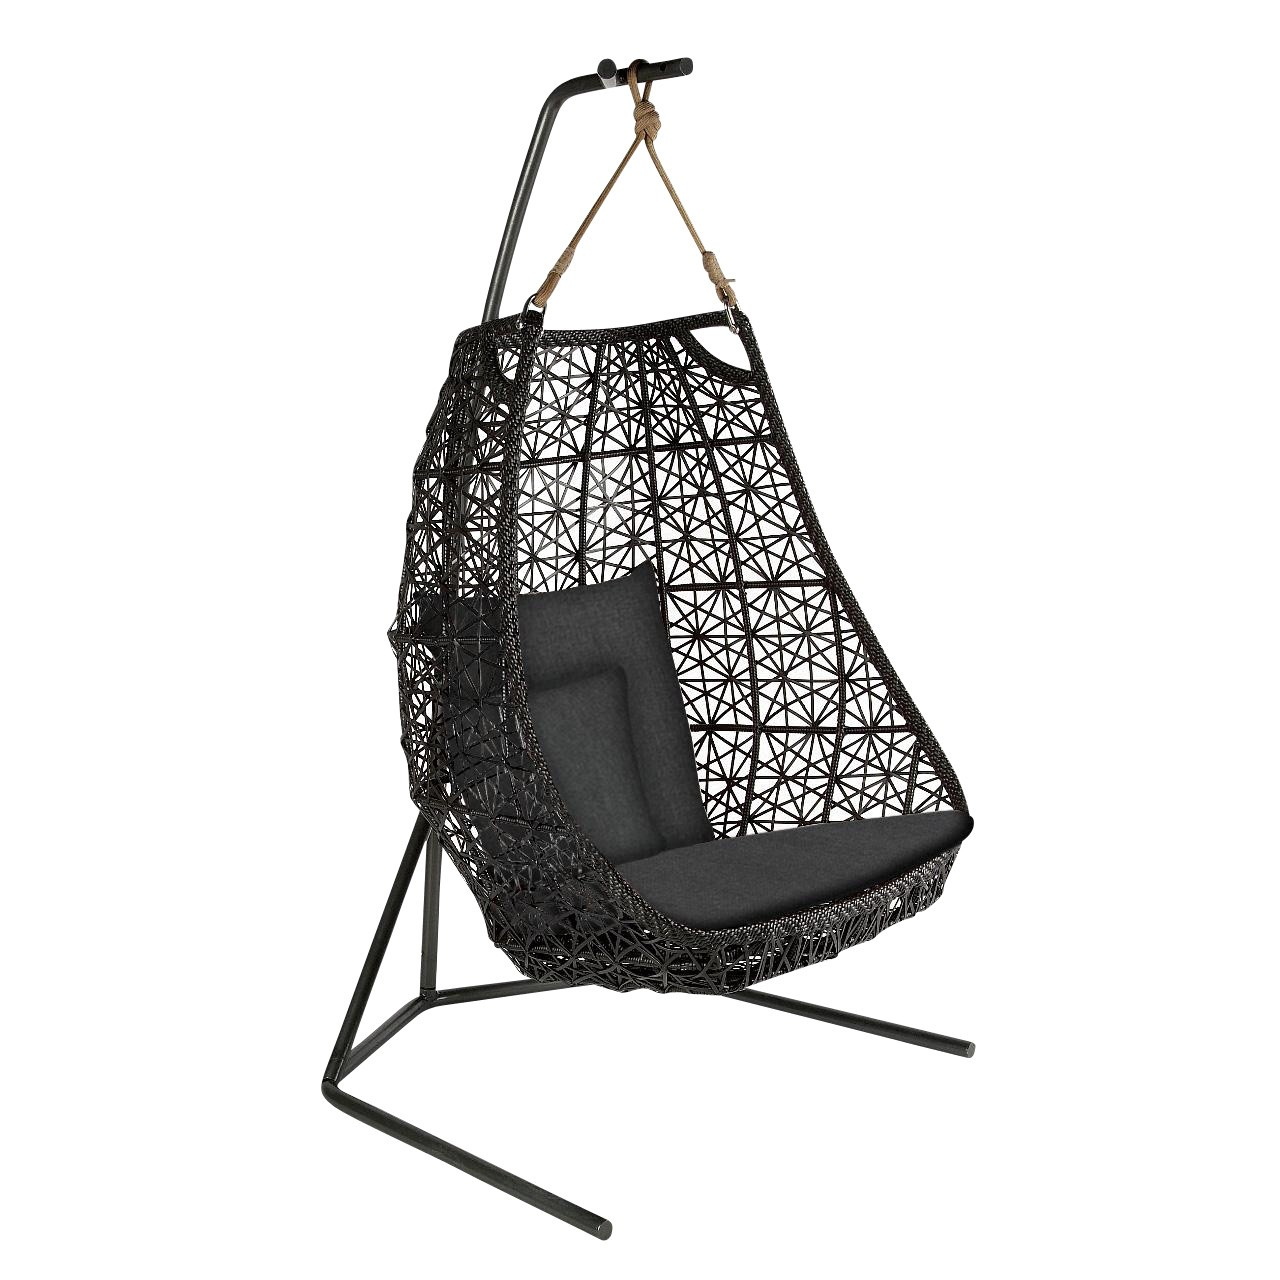 hanging chair egg best power recliner chairs canada kettal maia swing ambientedirect black chestnut brown cushion